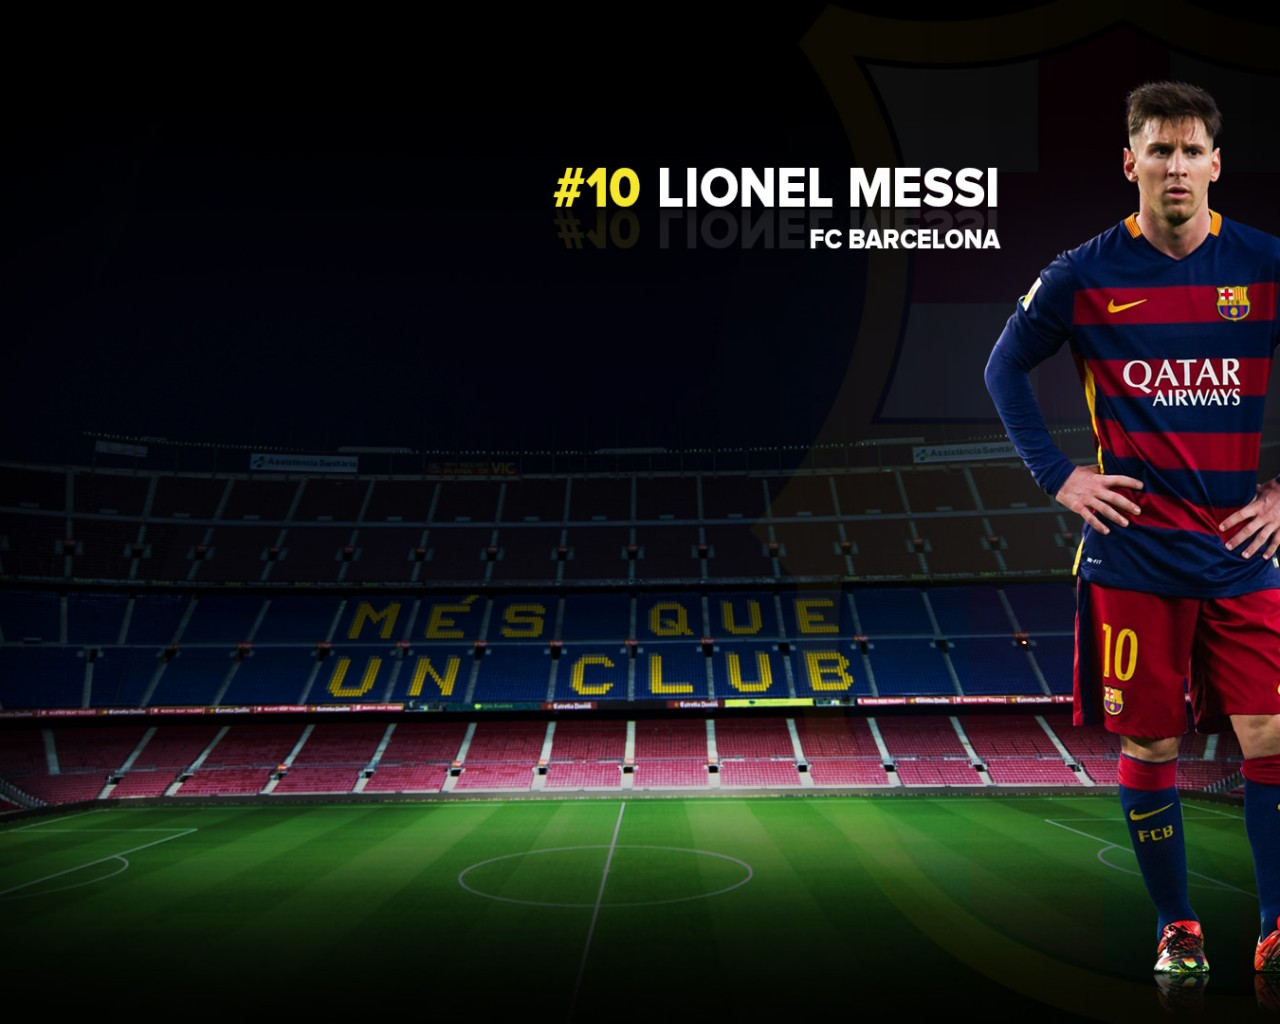 Lionel Messi FC Barcelona 20152016 Wallpaper   Football Wallpapers HD 1280x1024